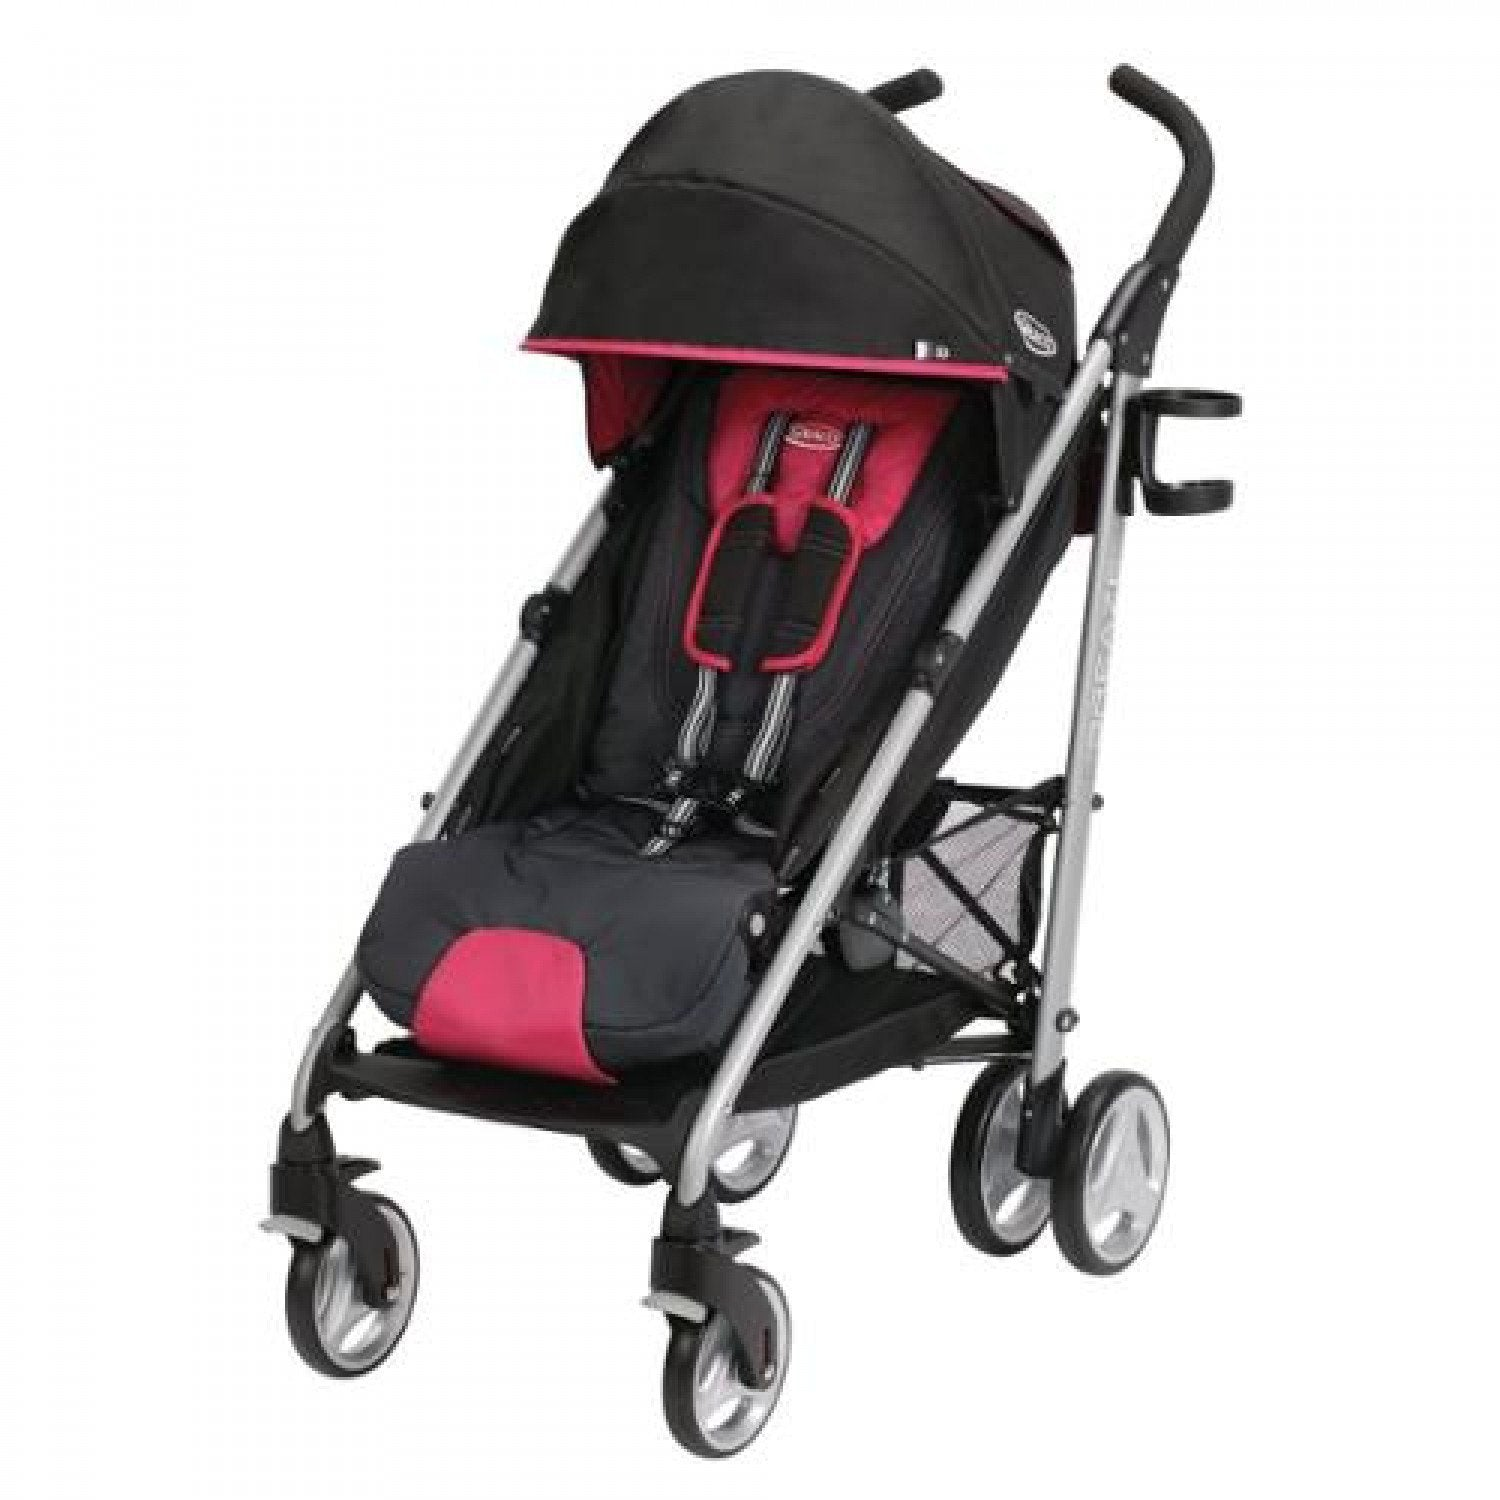 Stroller, Tips To Finding Safe Baby Strollers